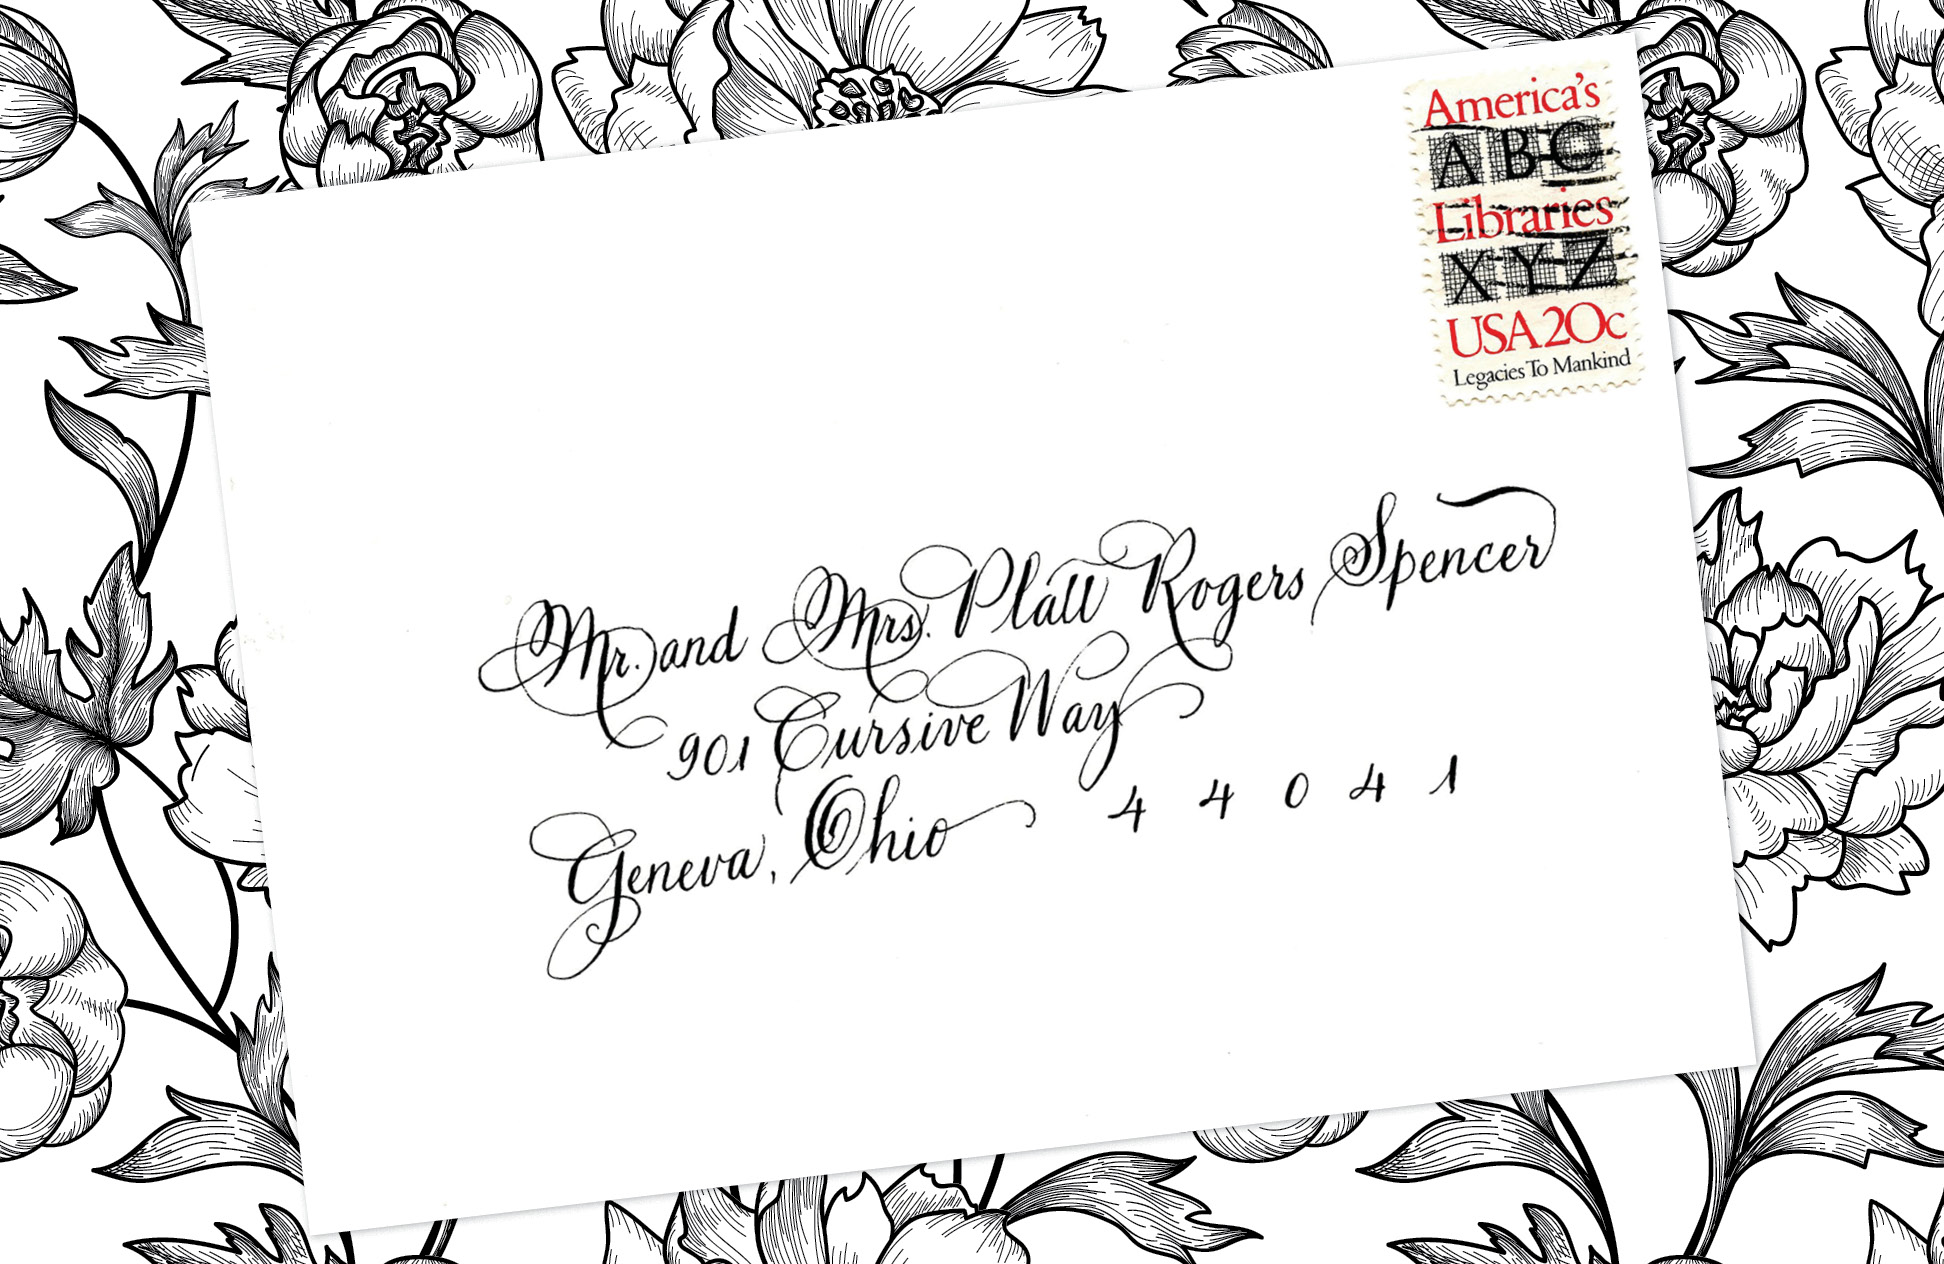 13. Style: Mr. and Mrs. Platt Rogers Spencer (Spencerian)